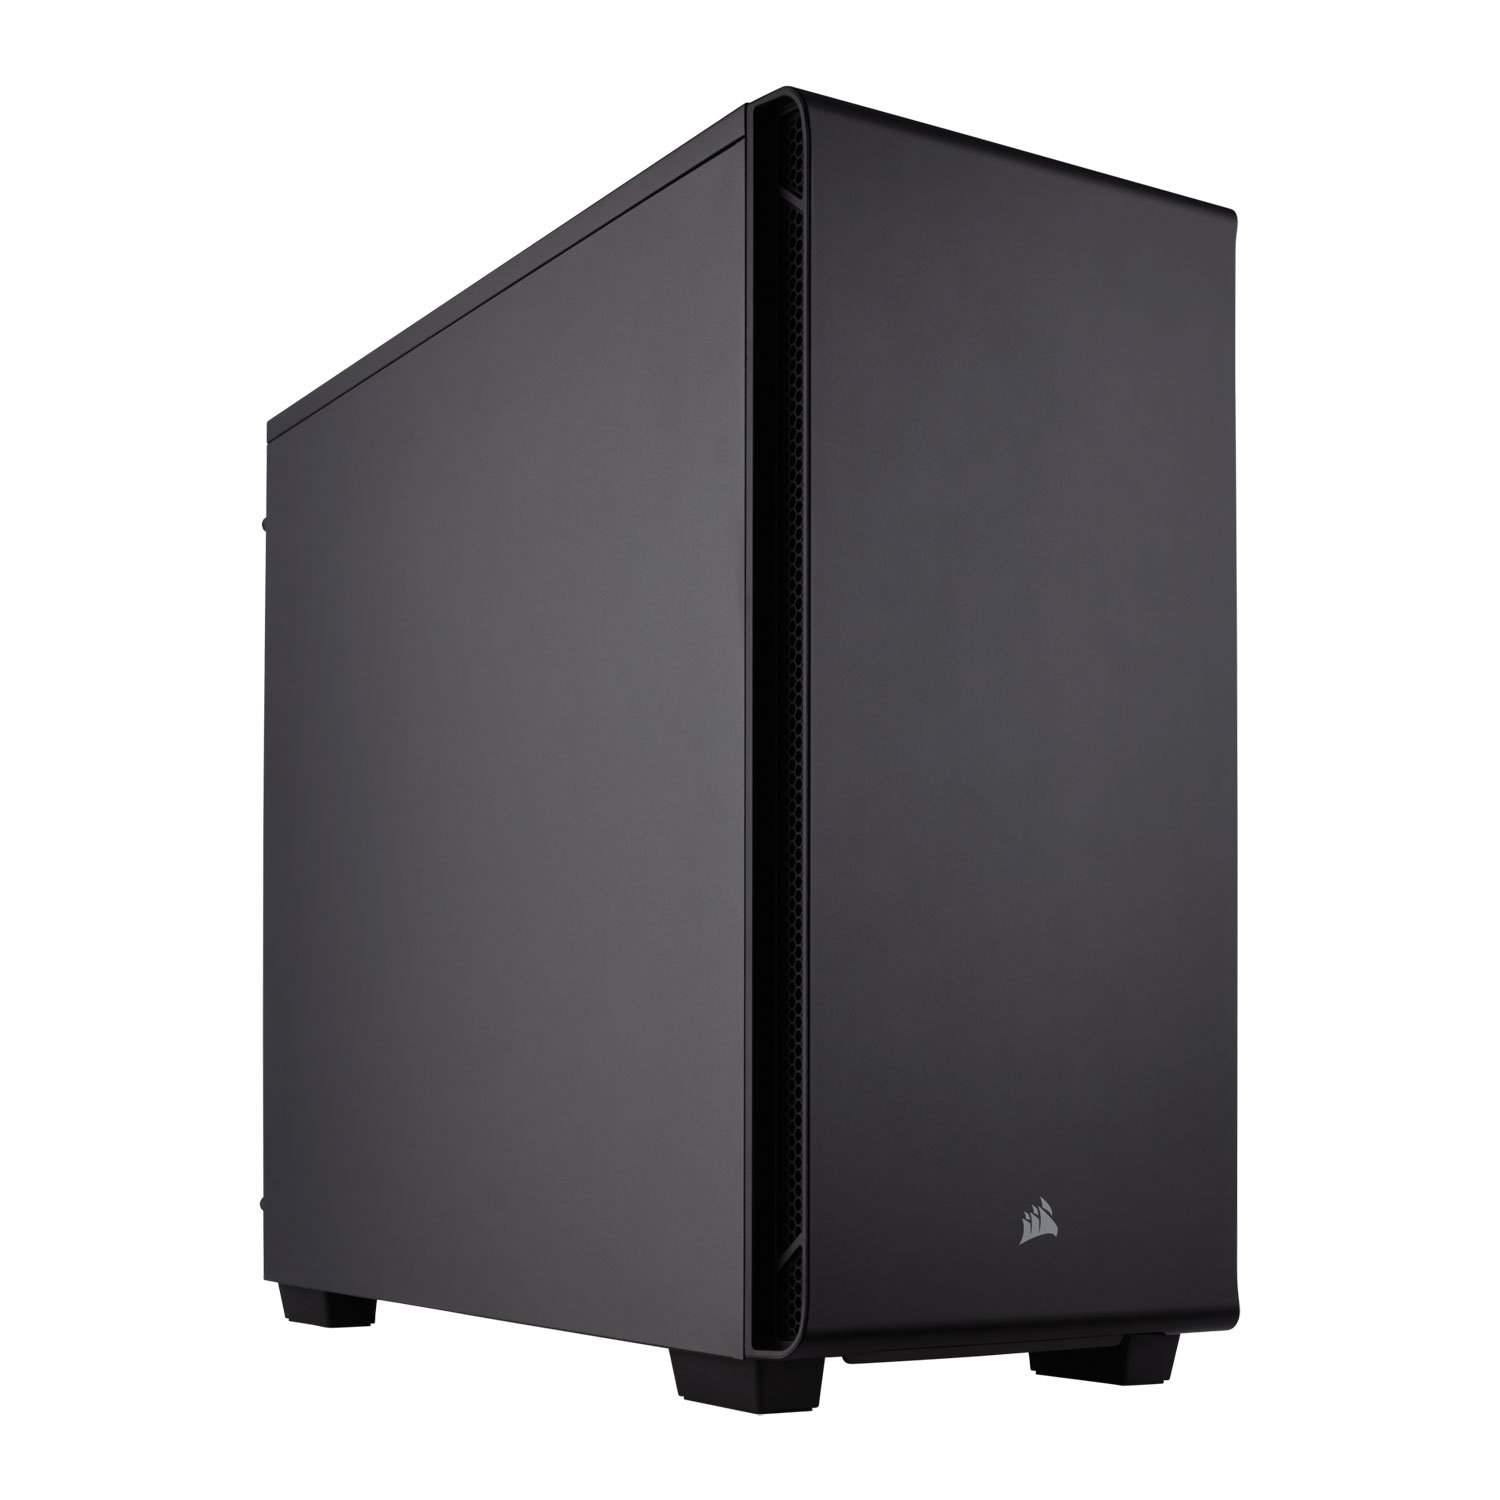 CORSAIR CARBIDE 270R Mid-Tower Case, Solid Panel